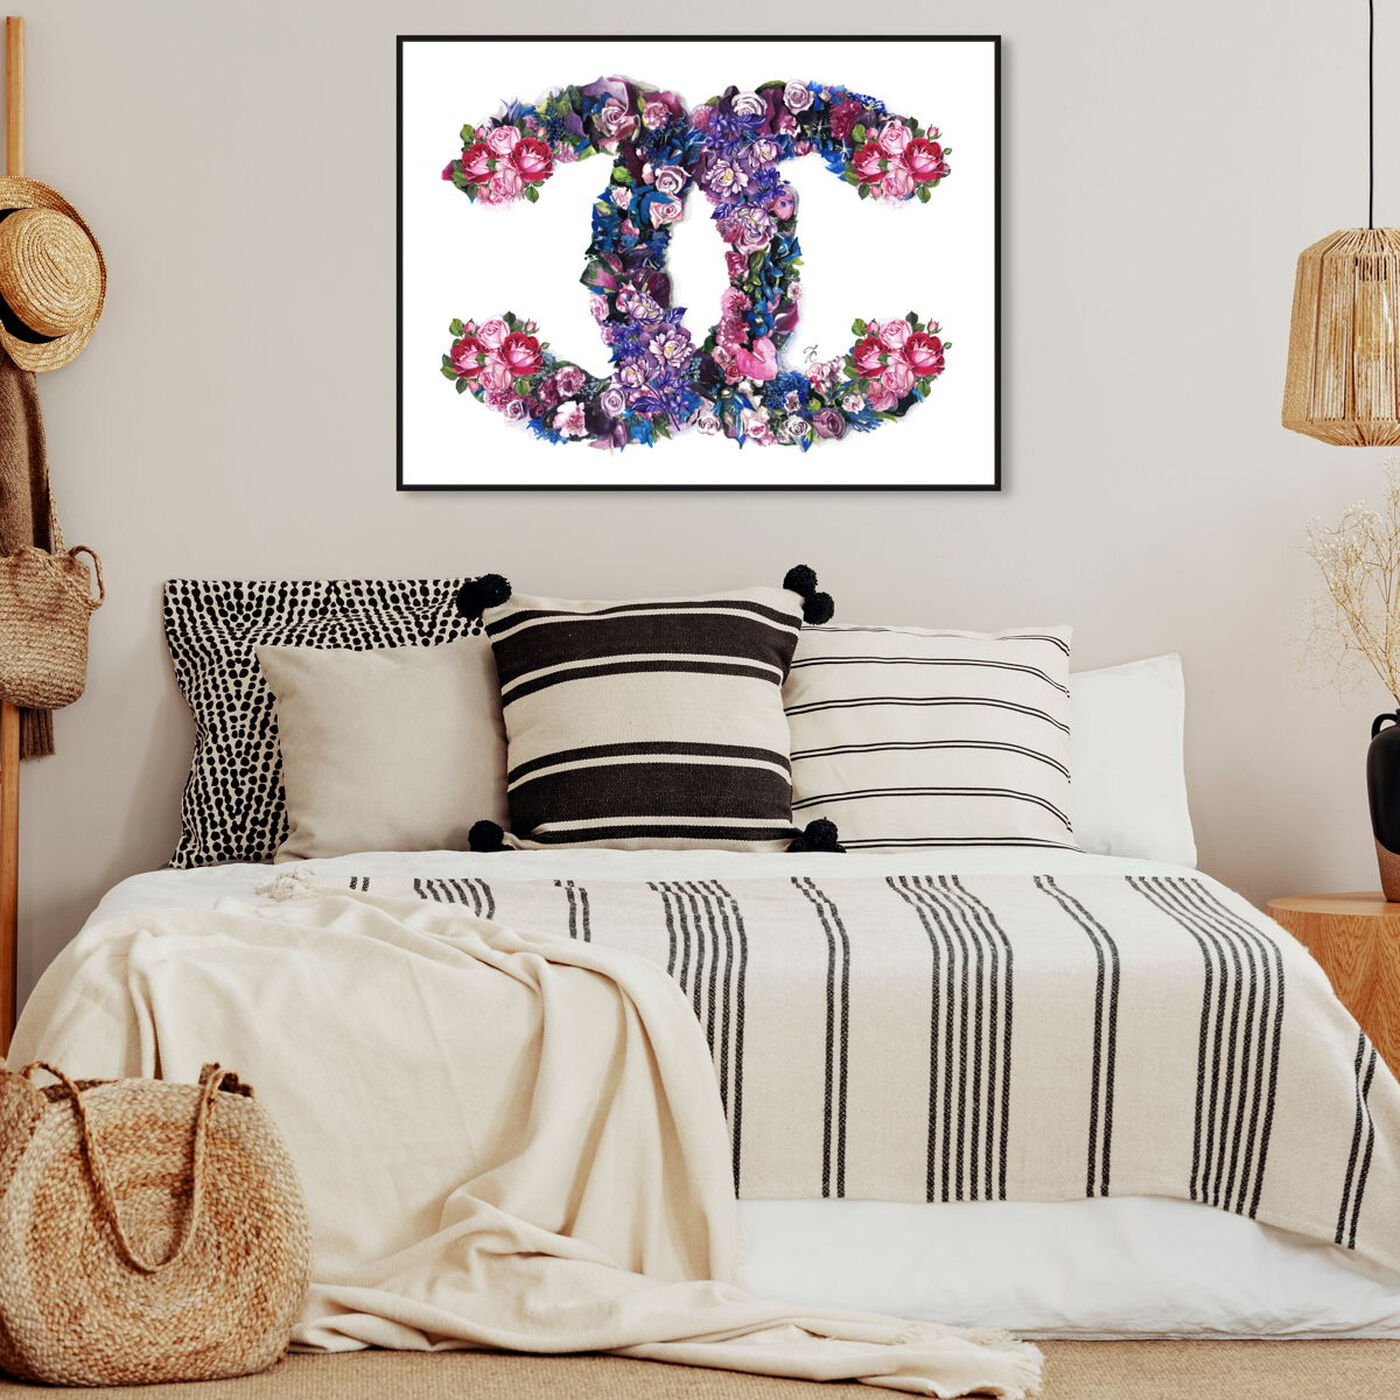 Hanging view of Doll Memories - Exquisite Flower Delight featuring fashion and glam and lifestyle art.